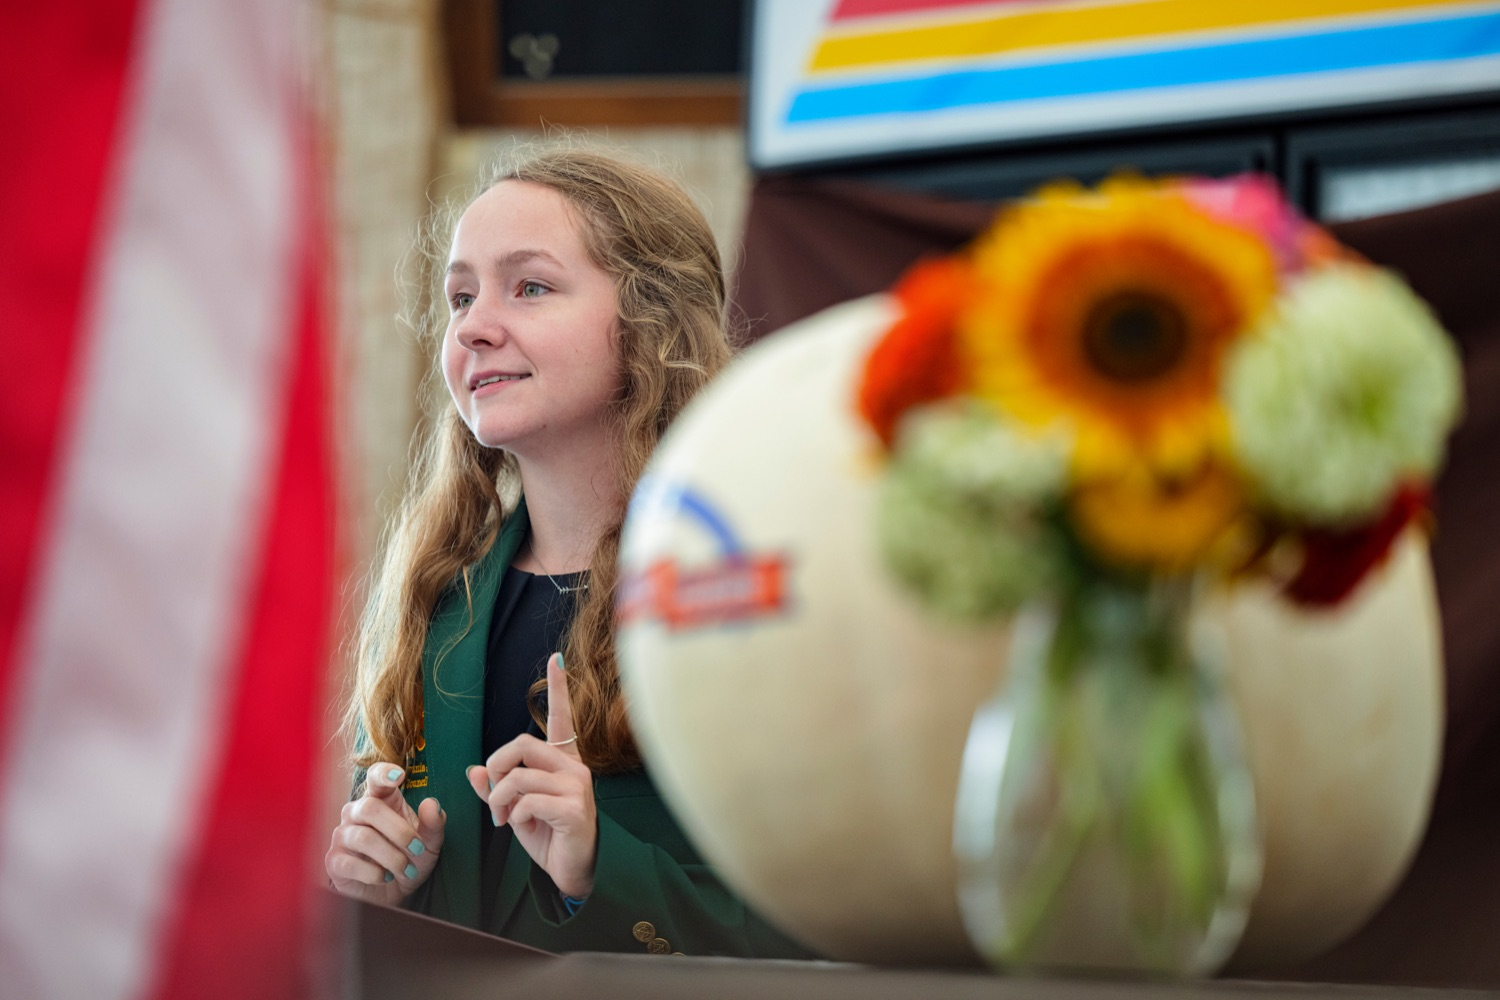 """<a href=""""https://filesource.wostreaming.net/commonwealthofpa/photo/19118_AG_FarmShowTheme_NK_024.jpg"""" target=""""_blank"""">⇣Download Photo<br></a>Livy Jumper, 4-H State Council President, speaks during a press conference, which announced the 106th Pennsylvania Farm Show will run from Saturday, January 8 through Saturday, January 15 and will be hosted at the Pennsylvania Farm Show Complex in Harrisburg, at Vale Wood Farms in Loretto on Thursday, September 16, 2021."""